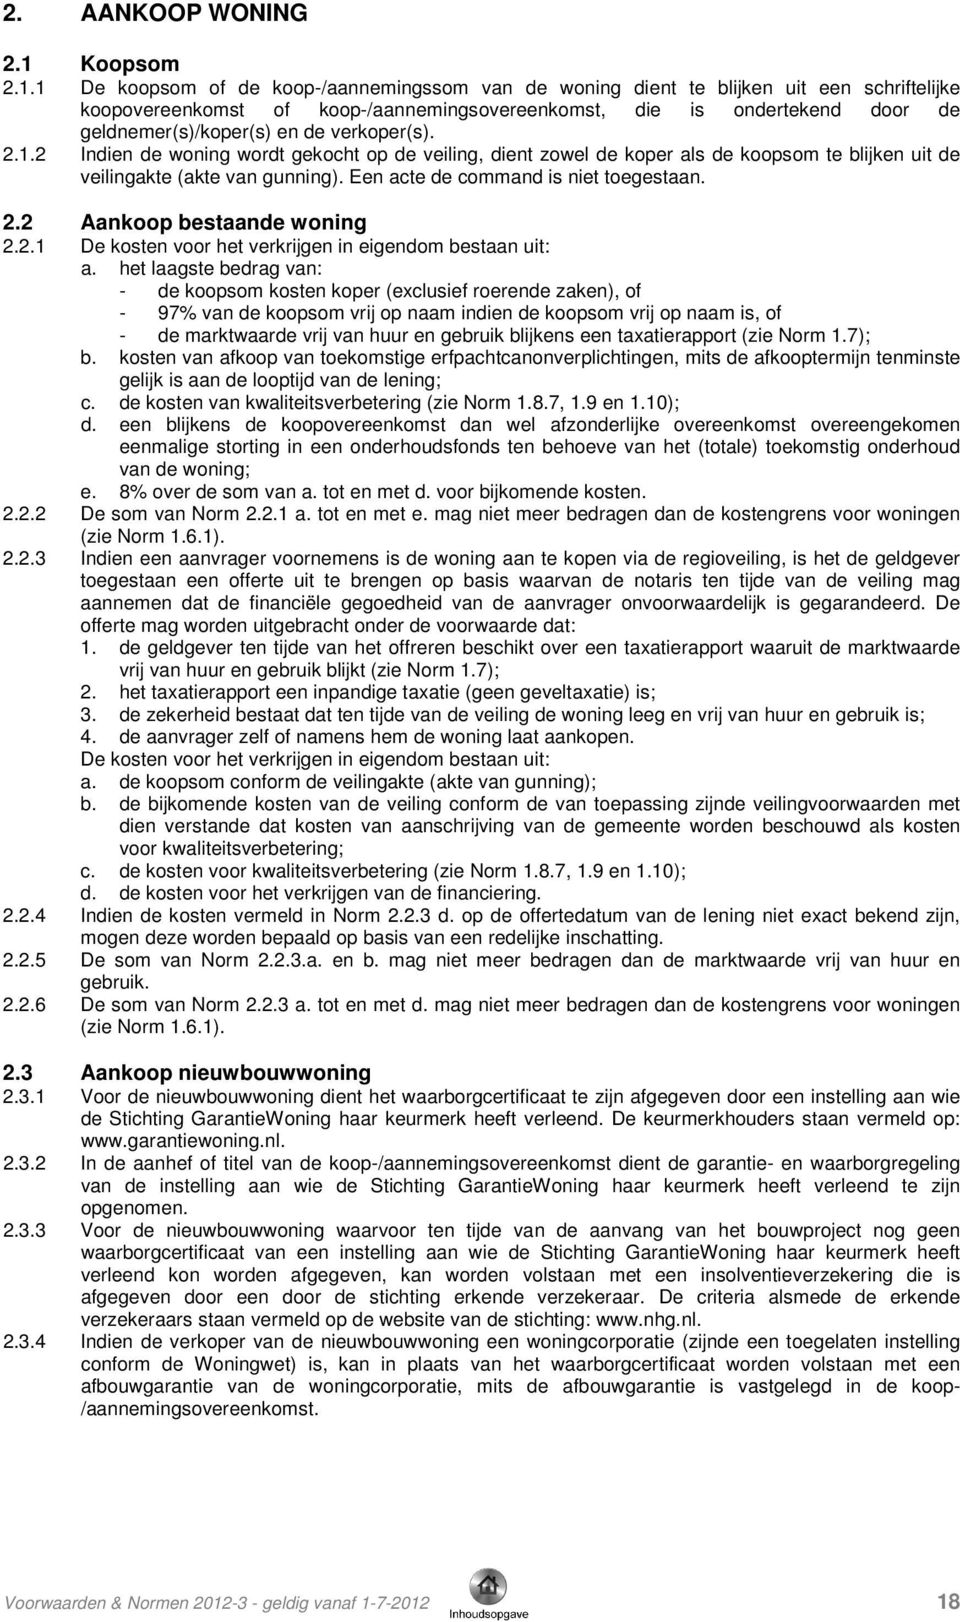 1 De koopsom of de koop-/aannemingssom van de woning dient te blijken uit een schriftelijke koopovereenkomst of koop-/aannemingsovereenkomst, die is ondertekend door de geldnemer(s)/koper(s) en de